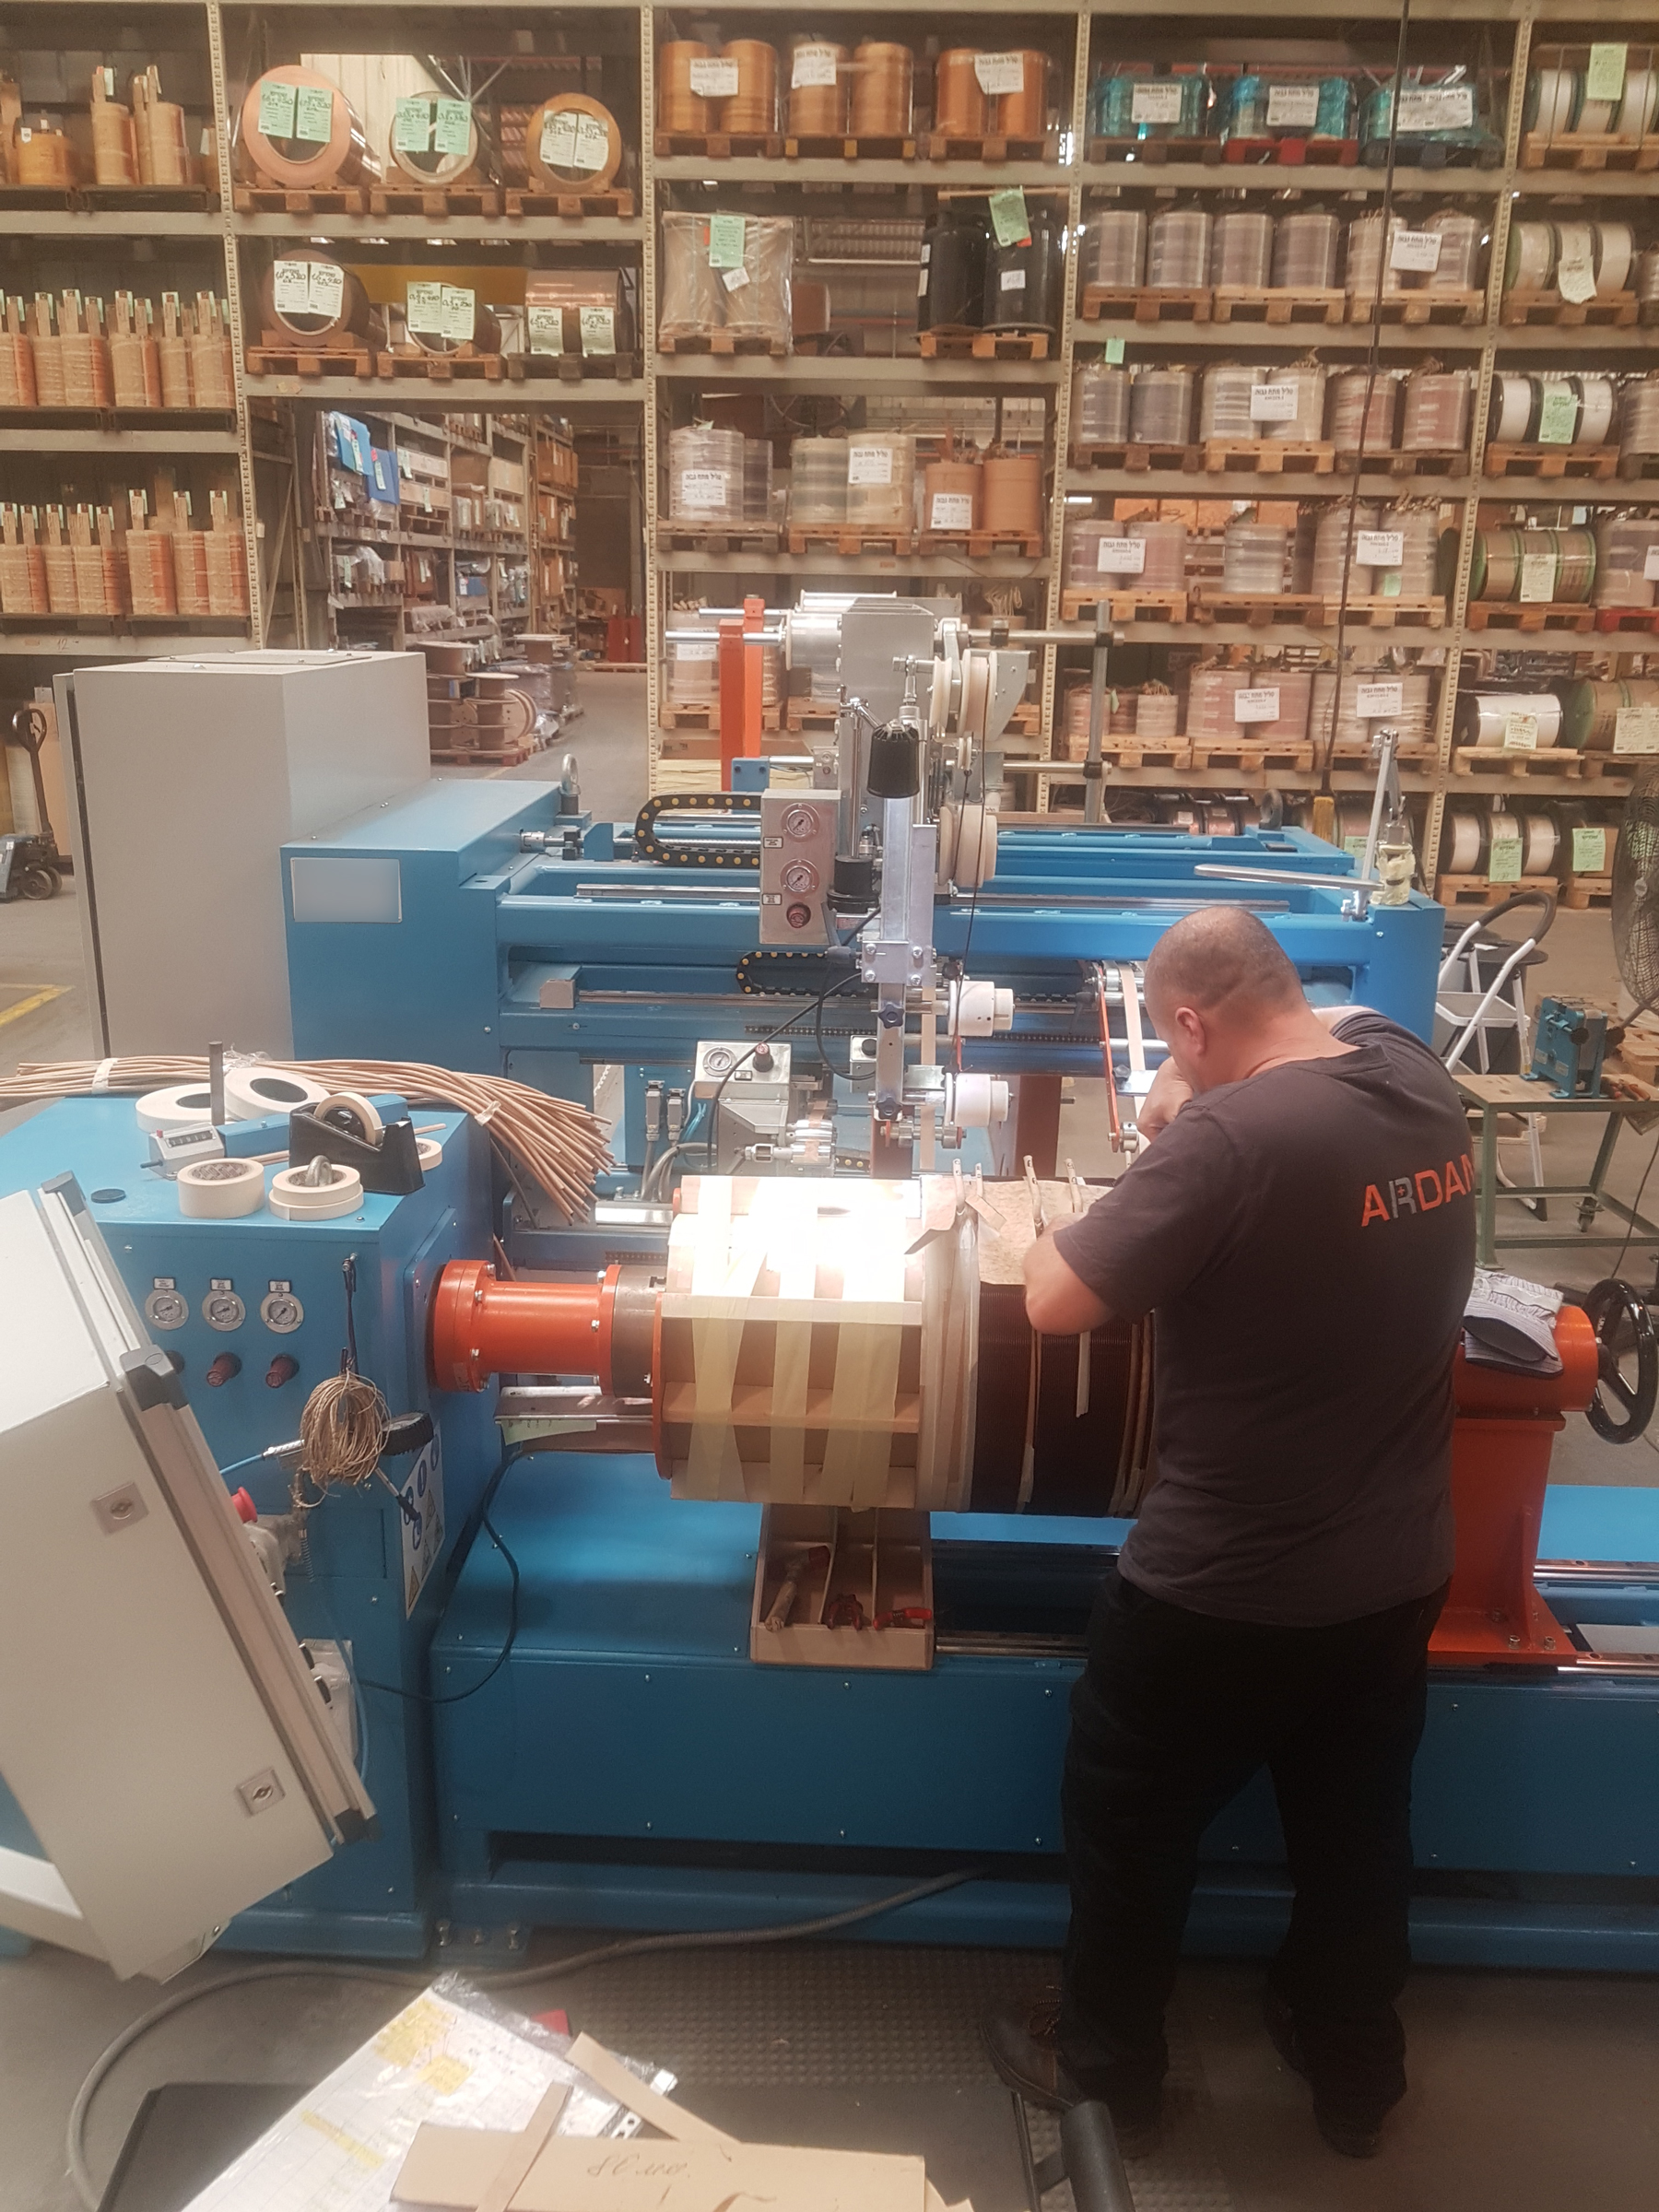 Ardan Invested in a new wire winding machine for distribution transformers